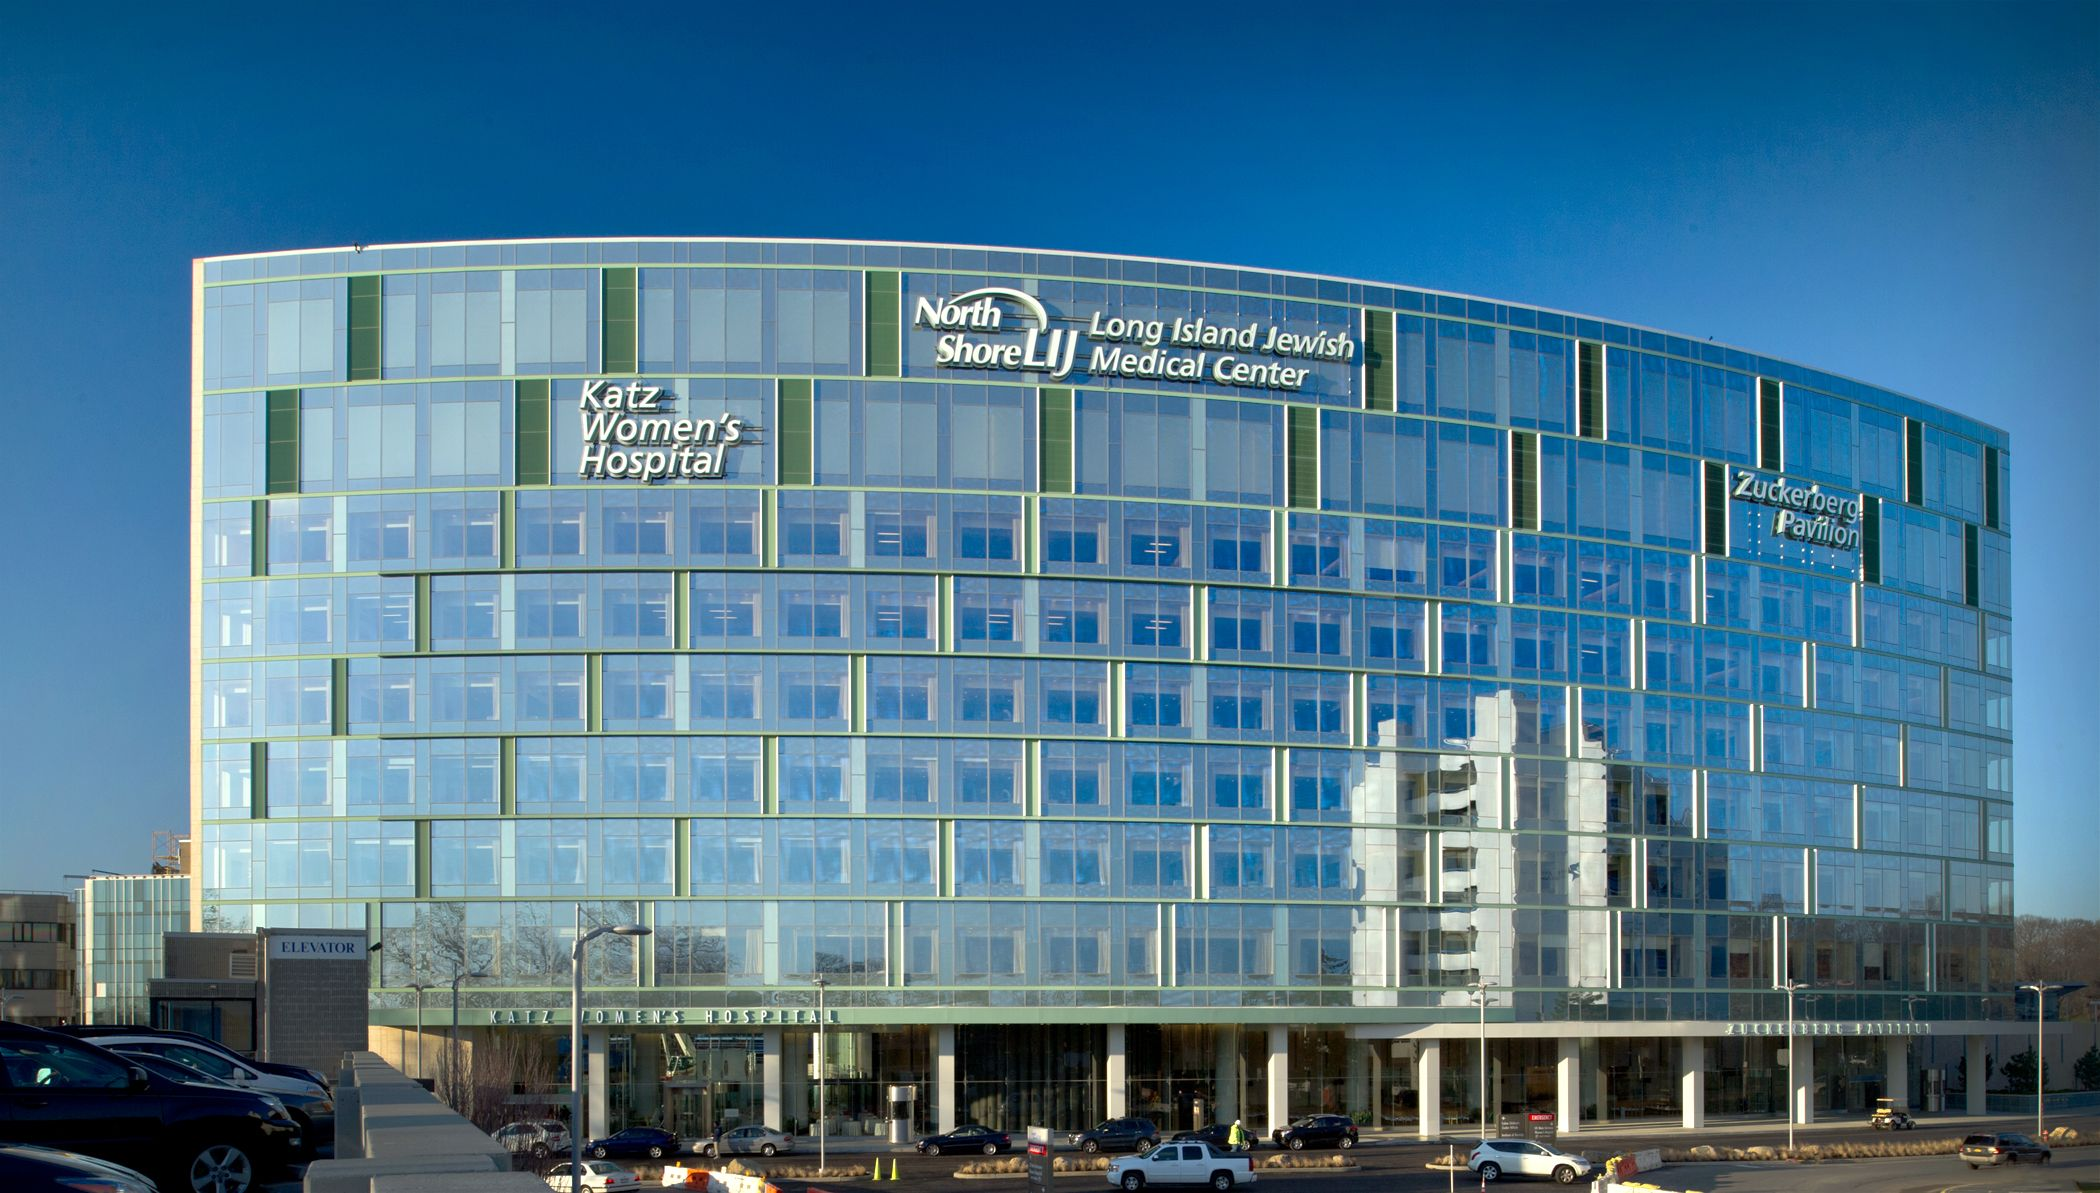 Long Island Jewish Medical Center Houses Over 700 Physicians